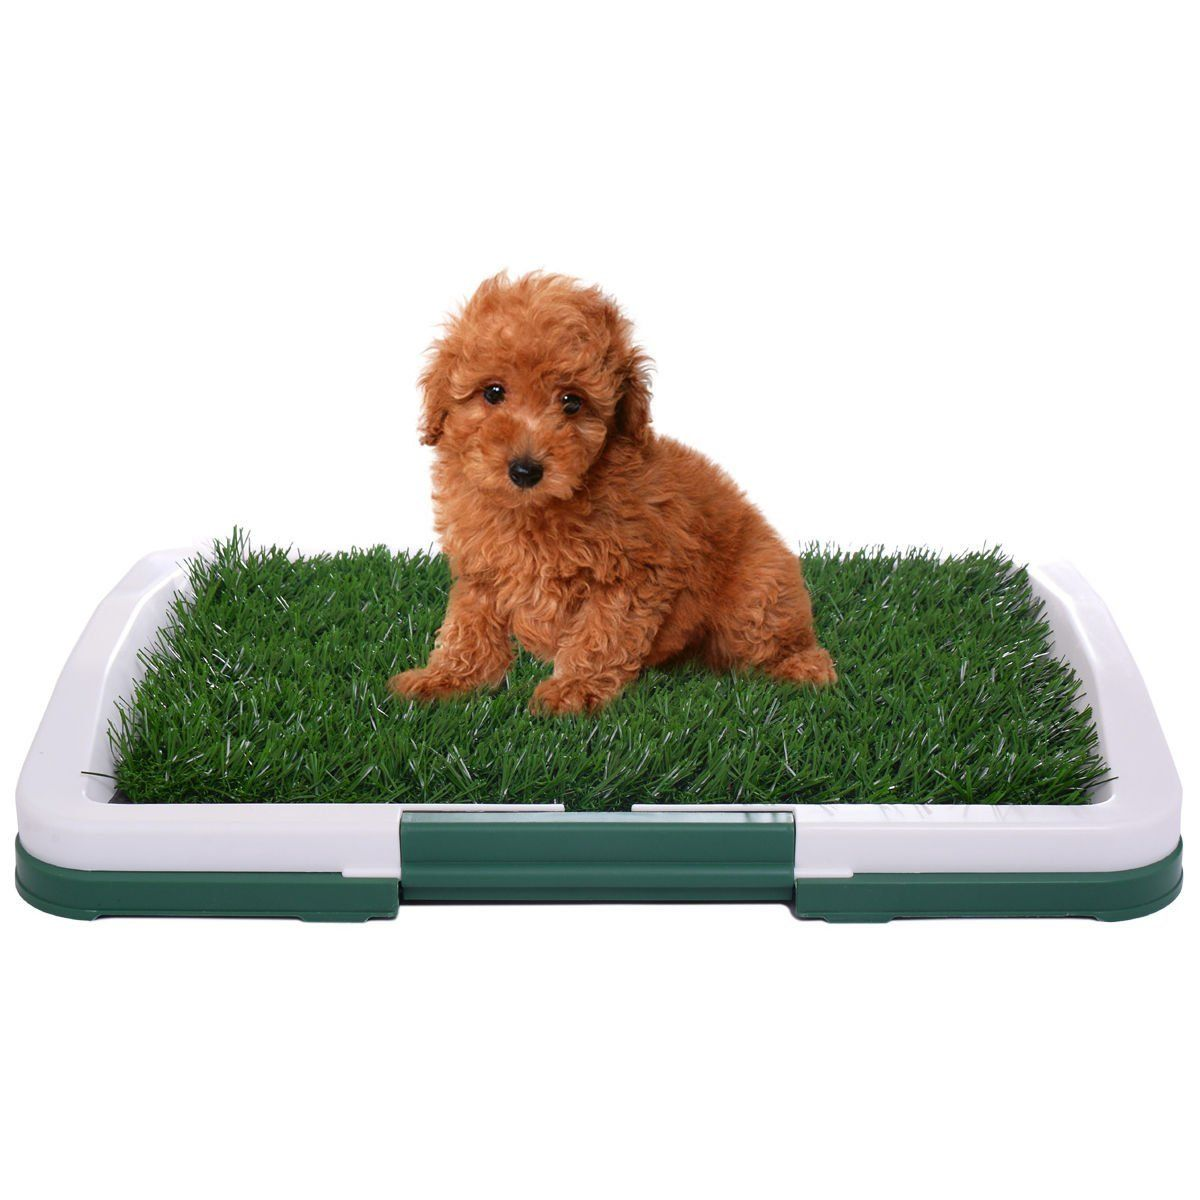 Jaxpety 3 Layers Puppy Potty Dog Pet Trainer Indoor Grass Training